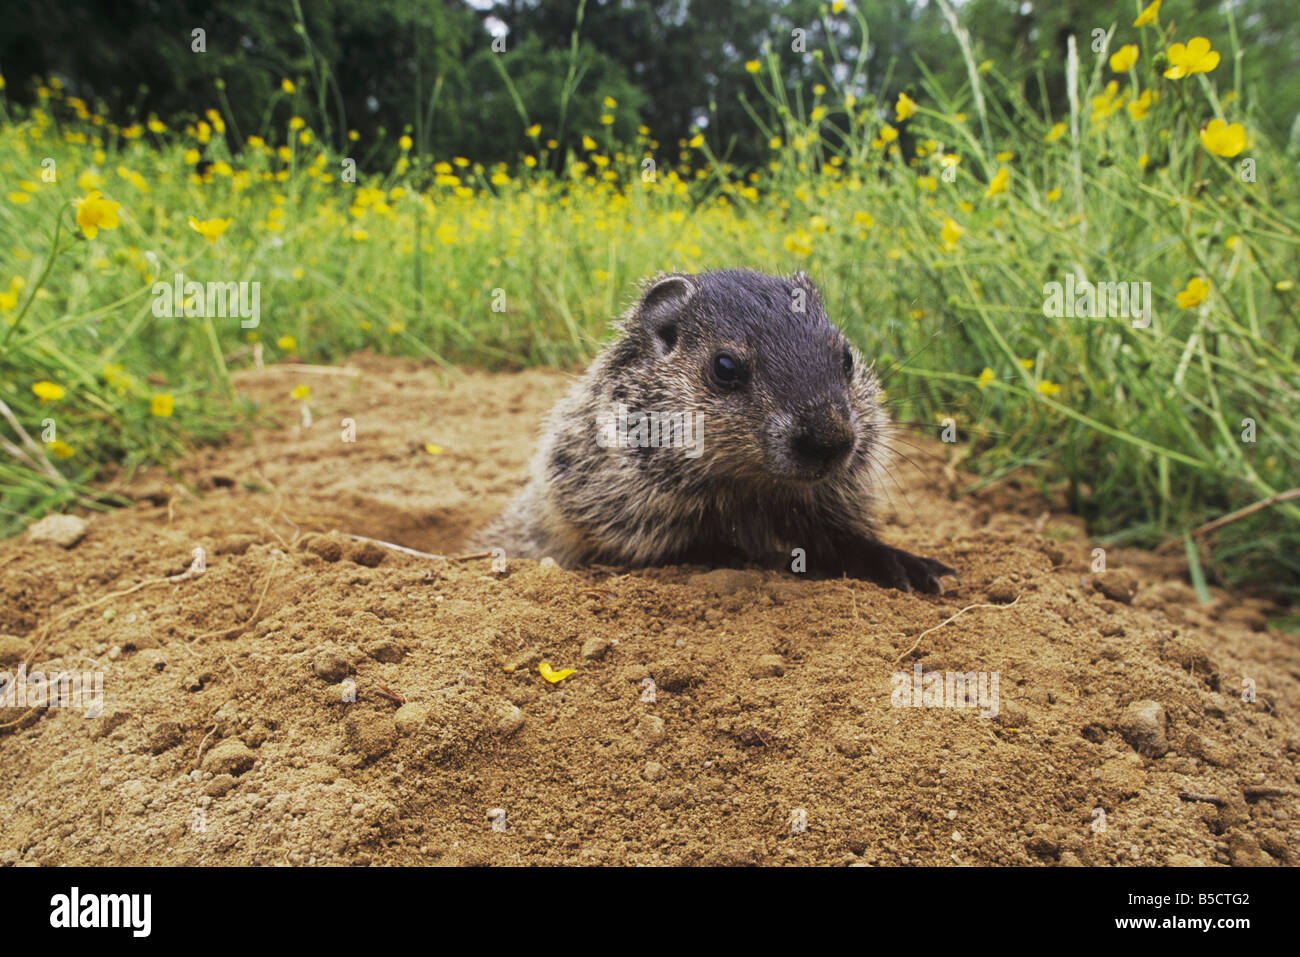 Groundhog Woodchuck Marmota monax young looking out of burrow Raleigh Wake County North Carolina USA - Stock Image